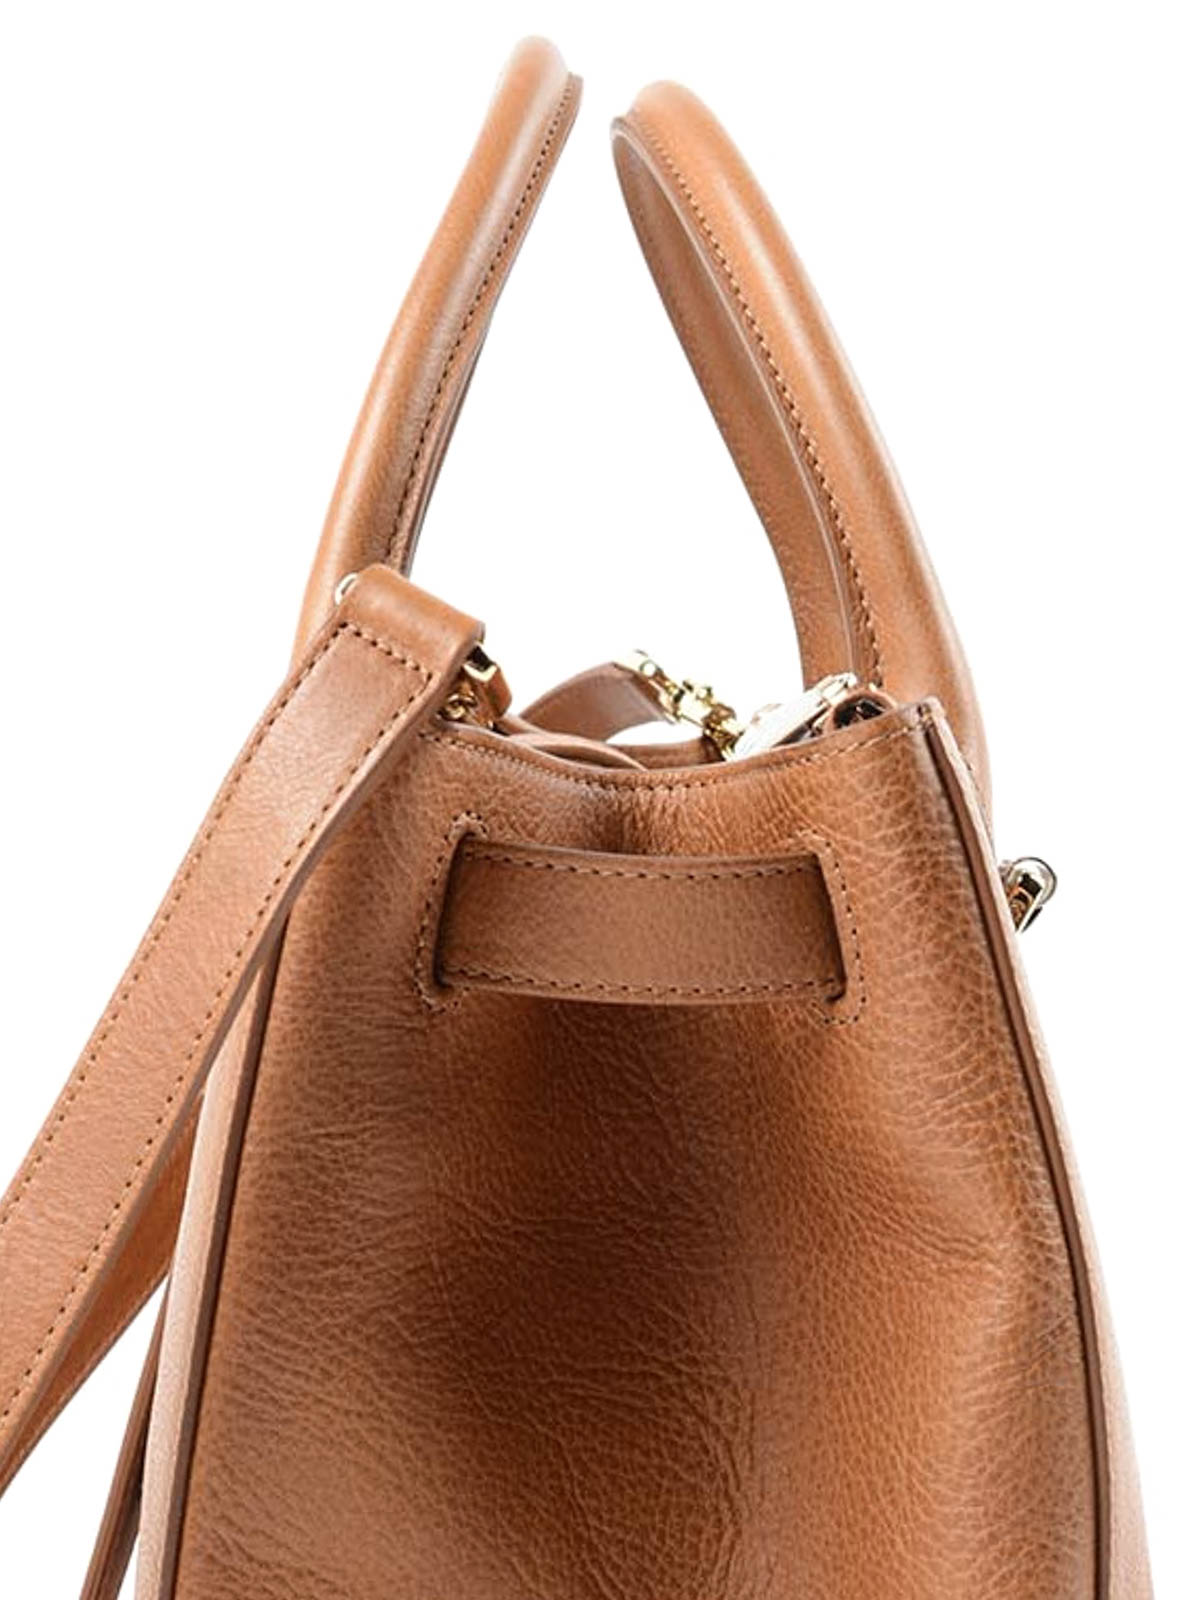 Bayswater tote by mulberry totes bags ikrix for The bayswater